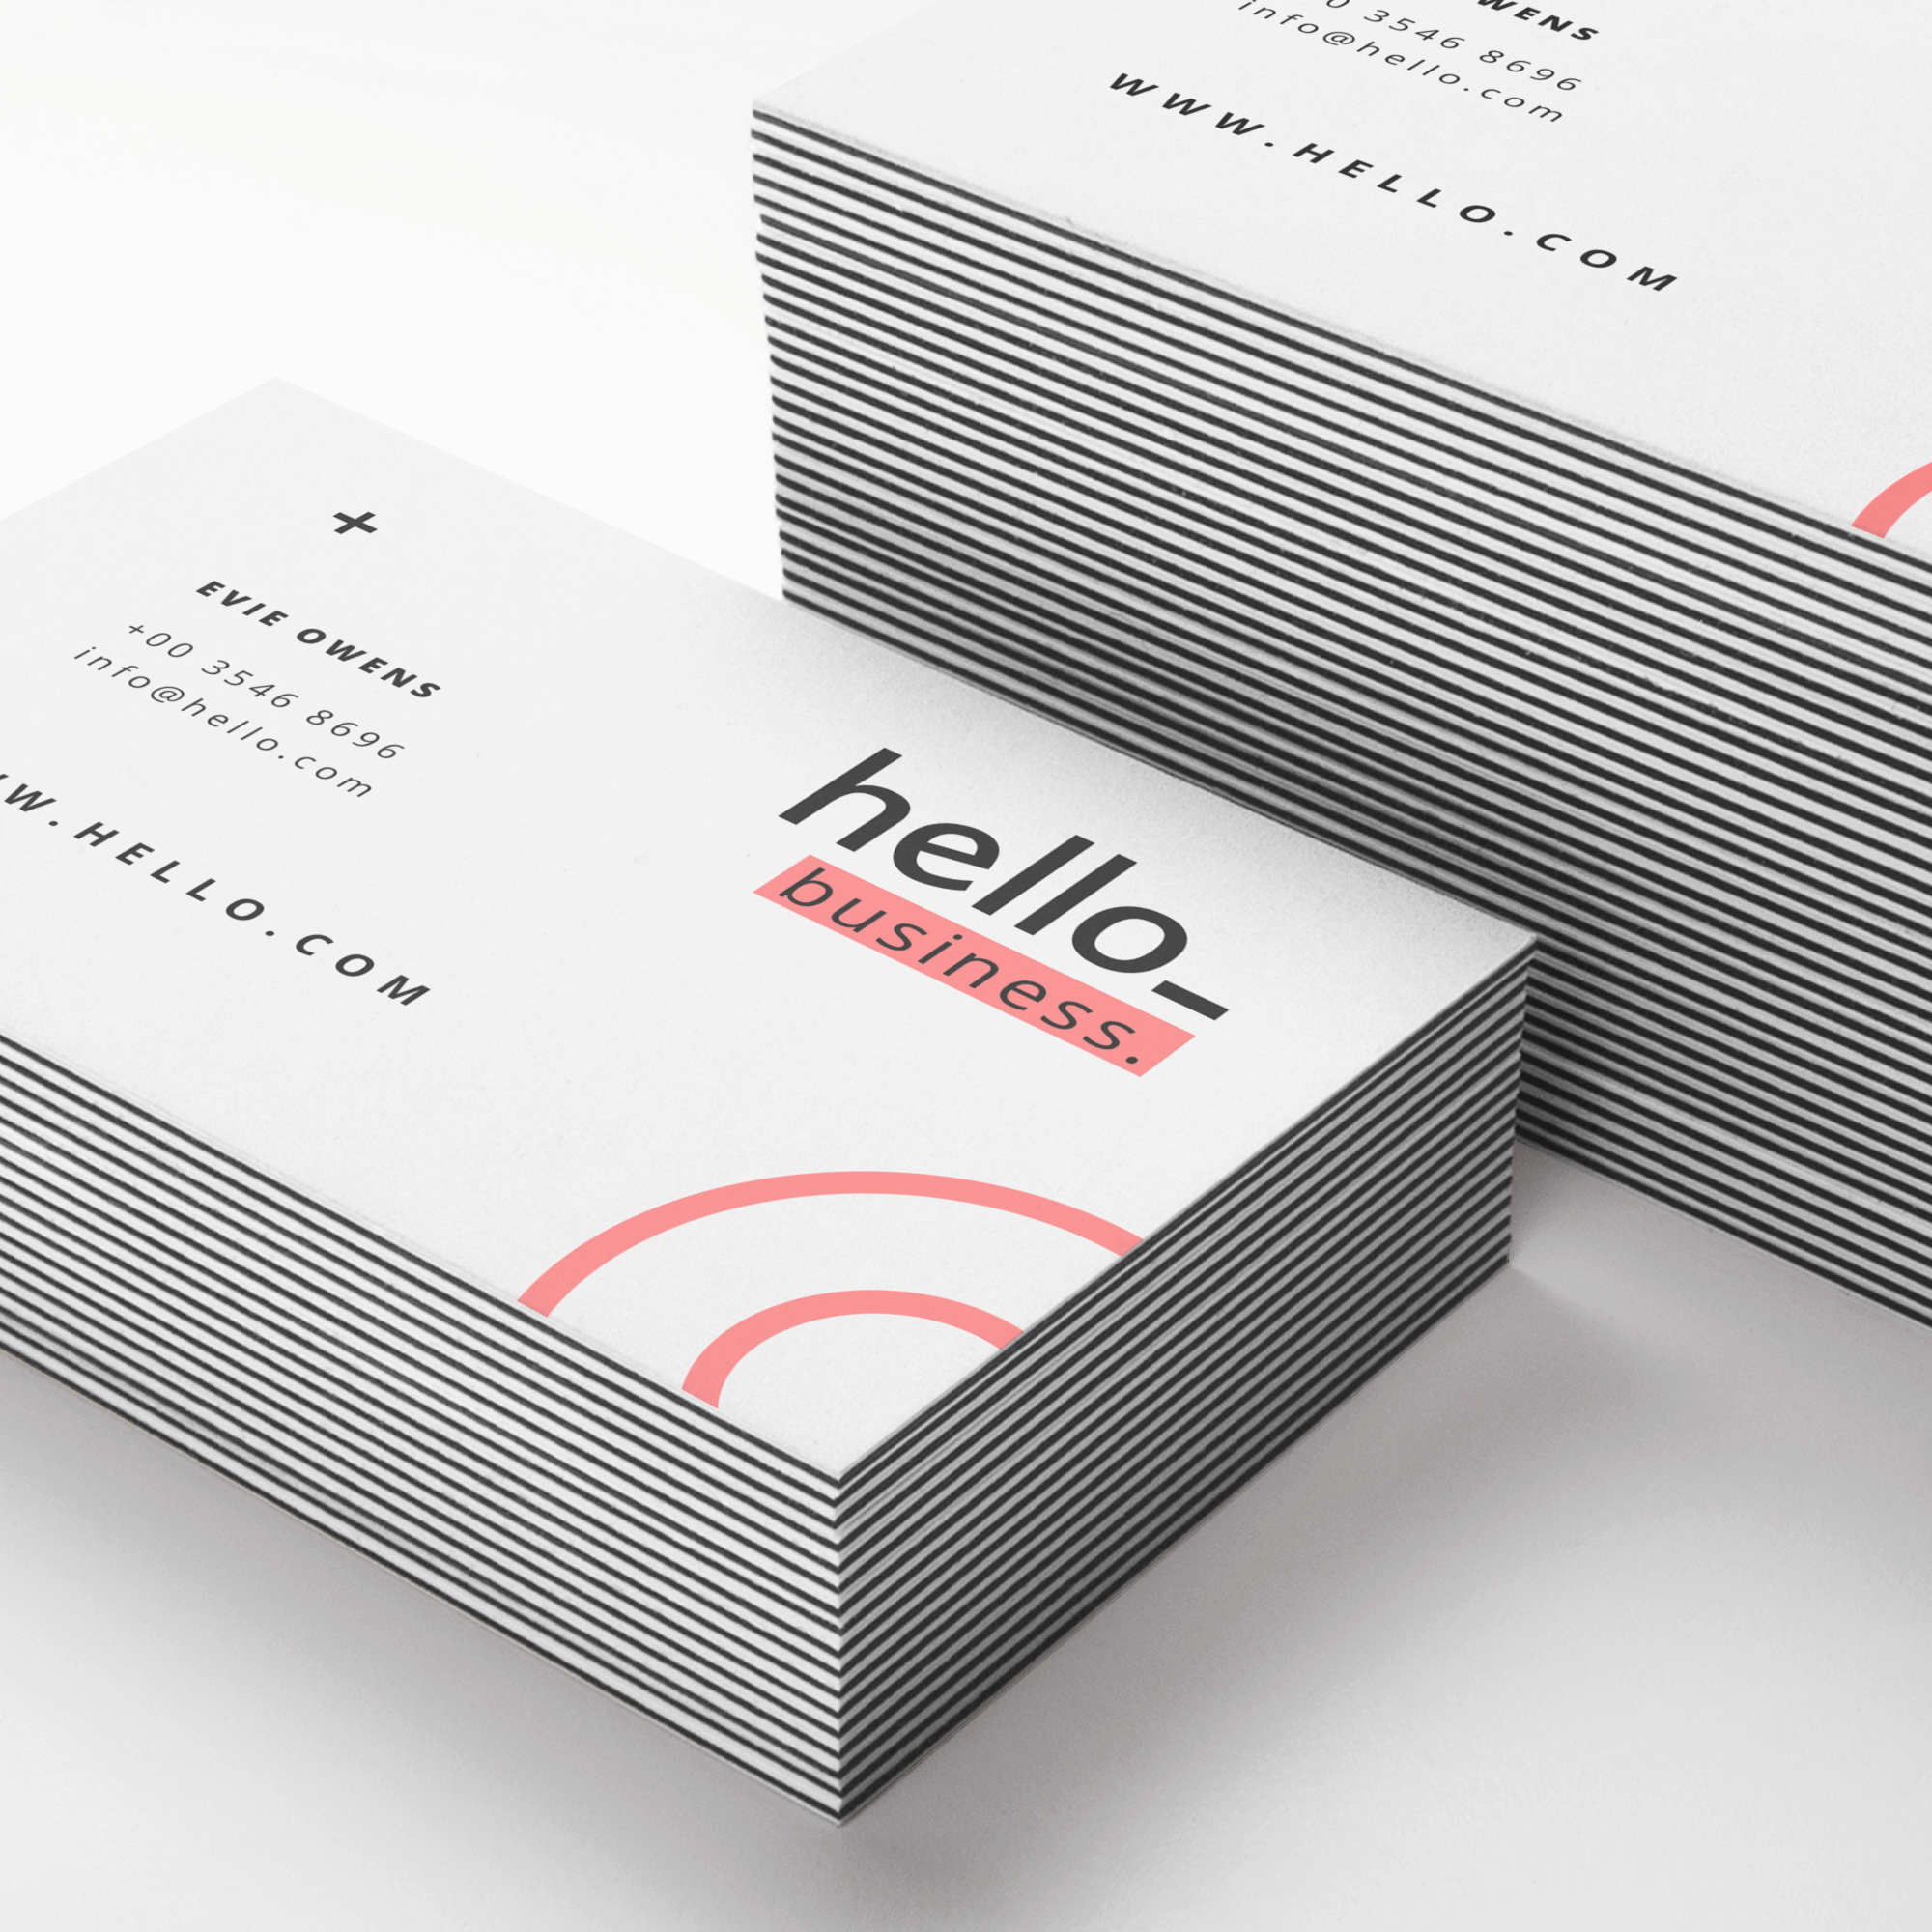 Printed Multilayer business cards for your networking opportunities.